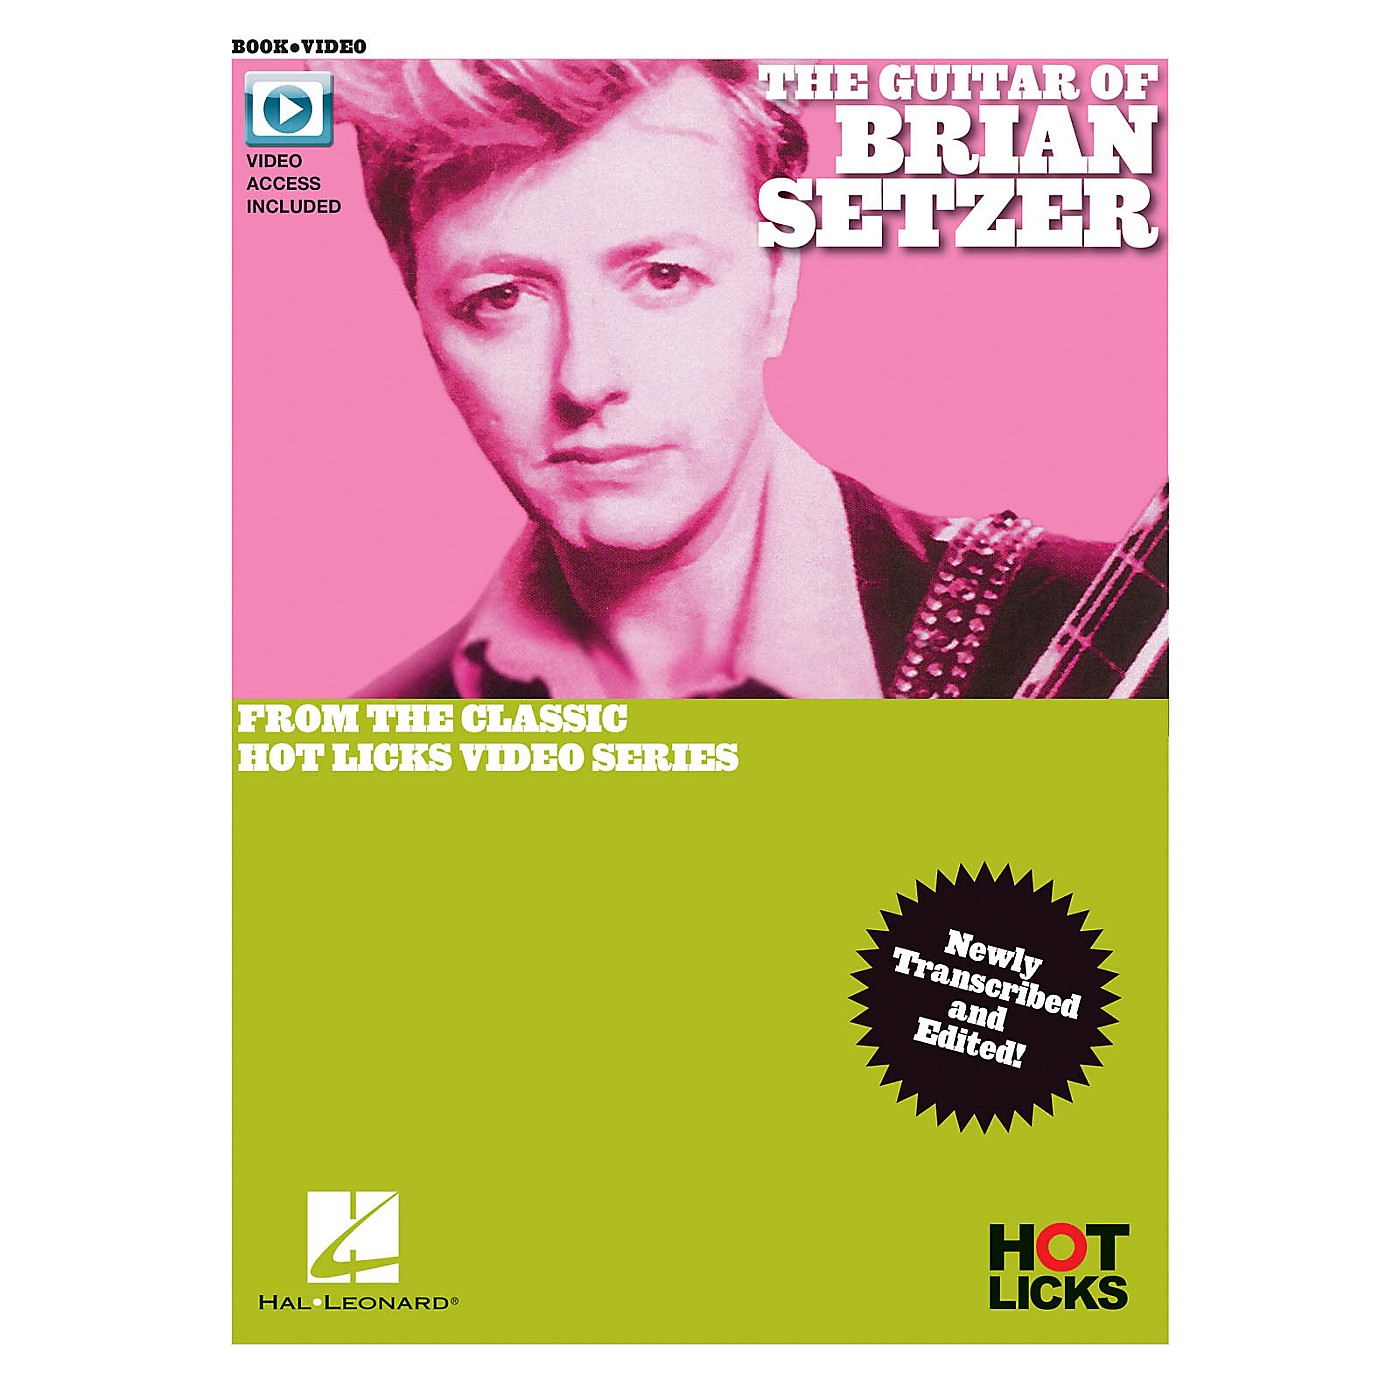 Hal Leonard The Guitar of Brian Setzer From the Classic Hot Licks Video Series Book/Video Online thumbnail